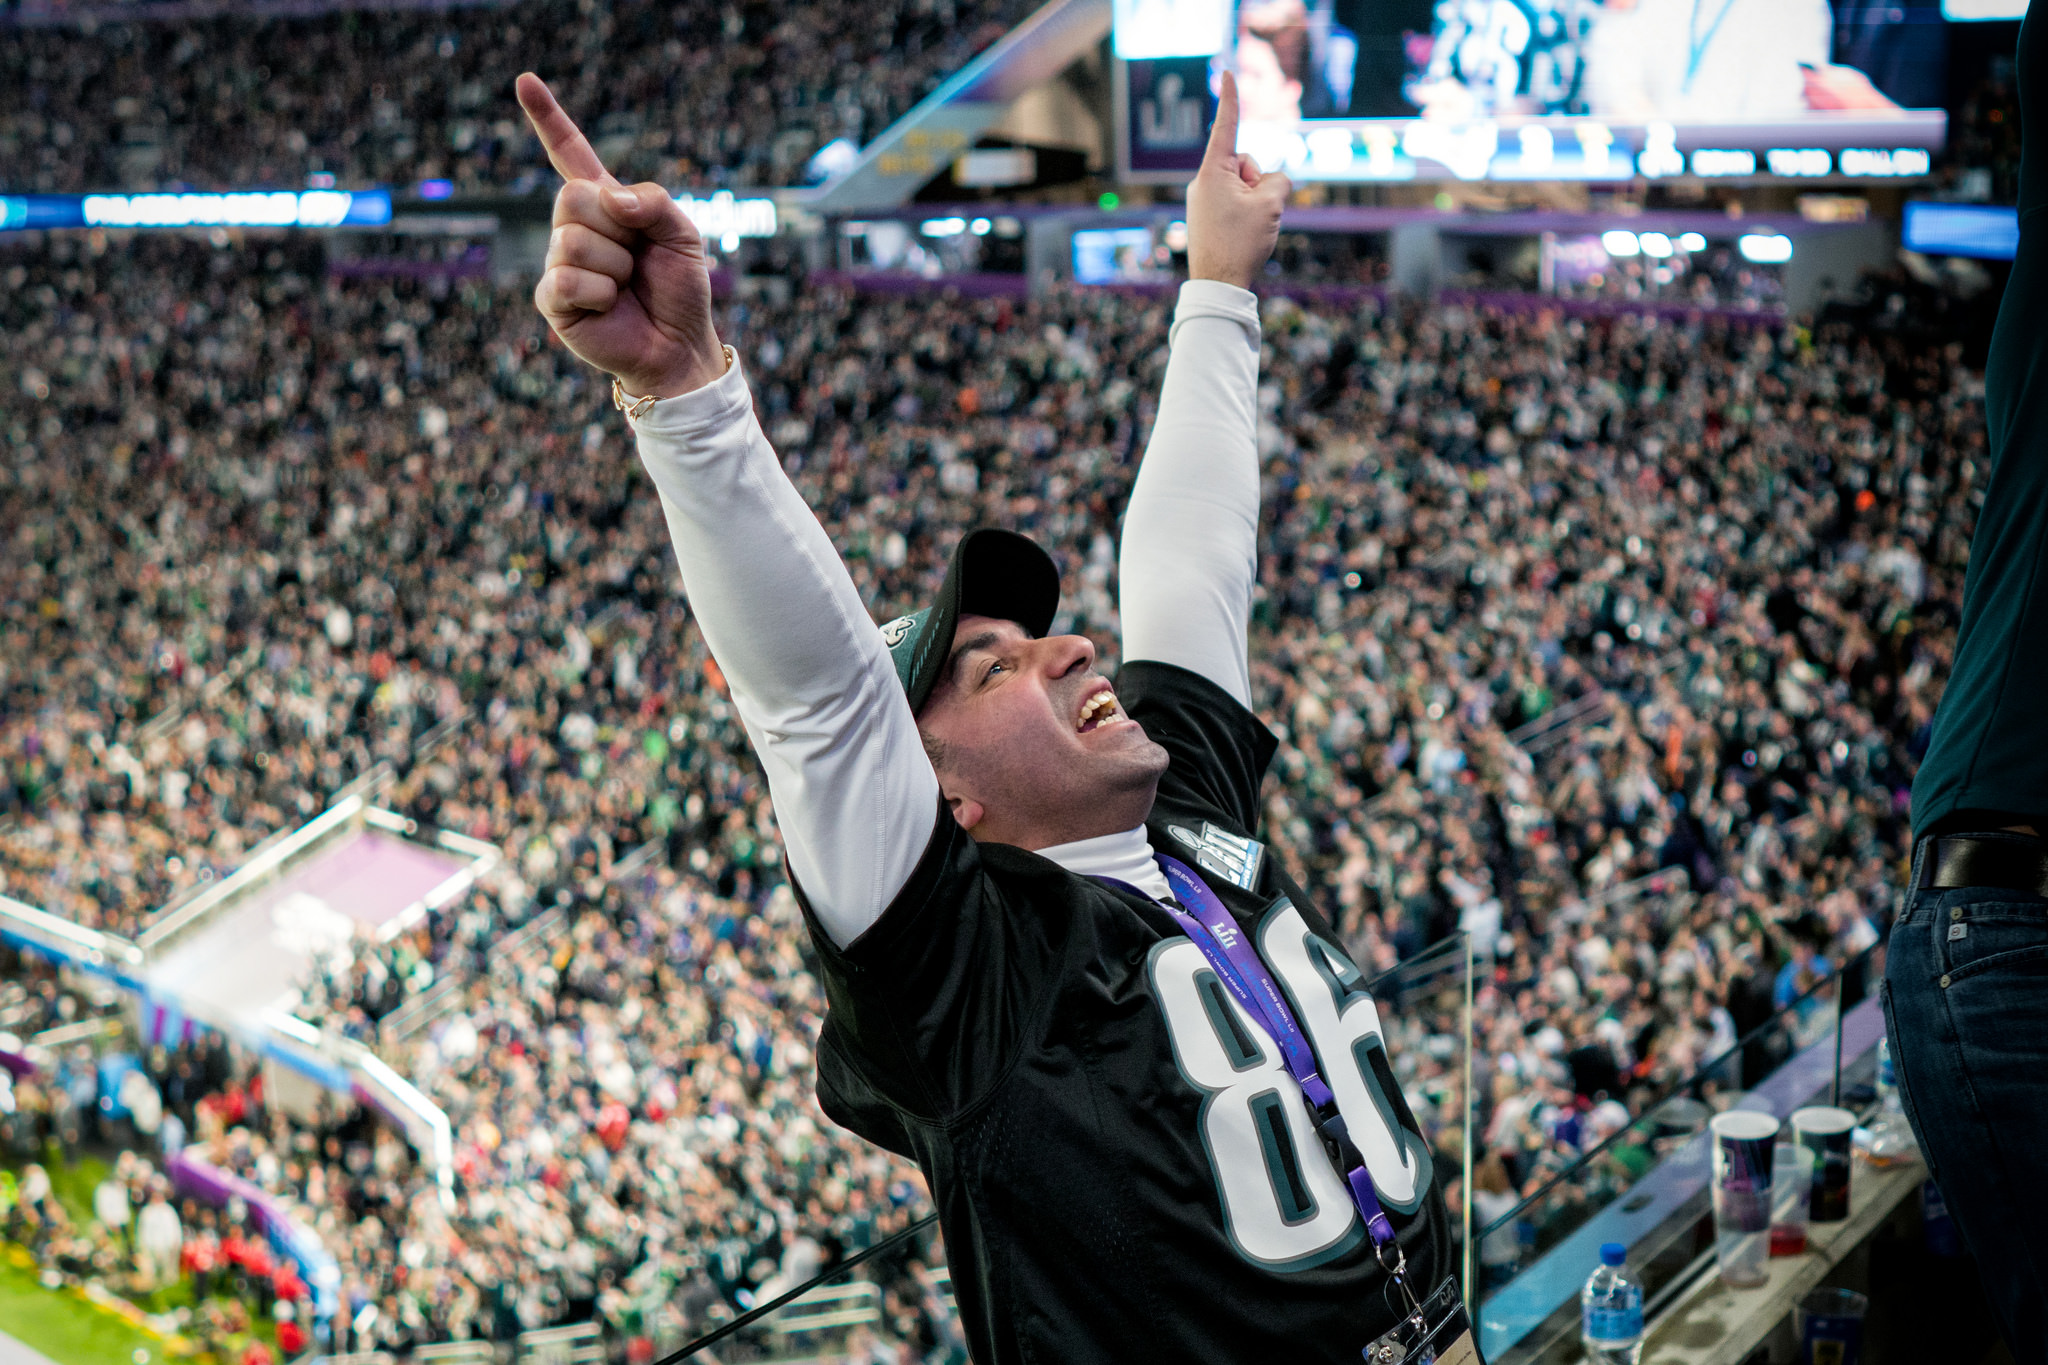 An Eagles fan celebrates in the stands at Super Bowl LII, Minneapolis MN